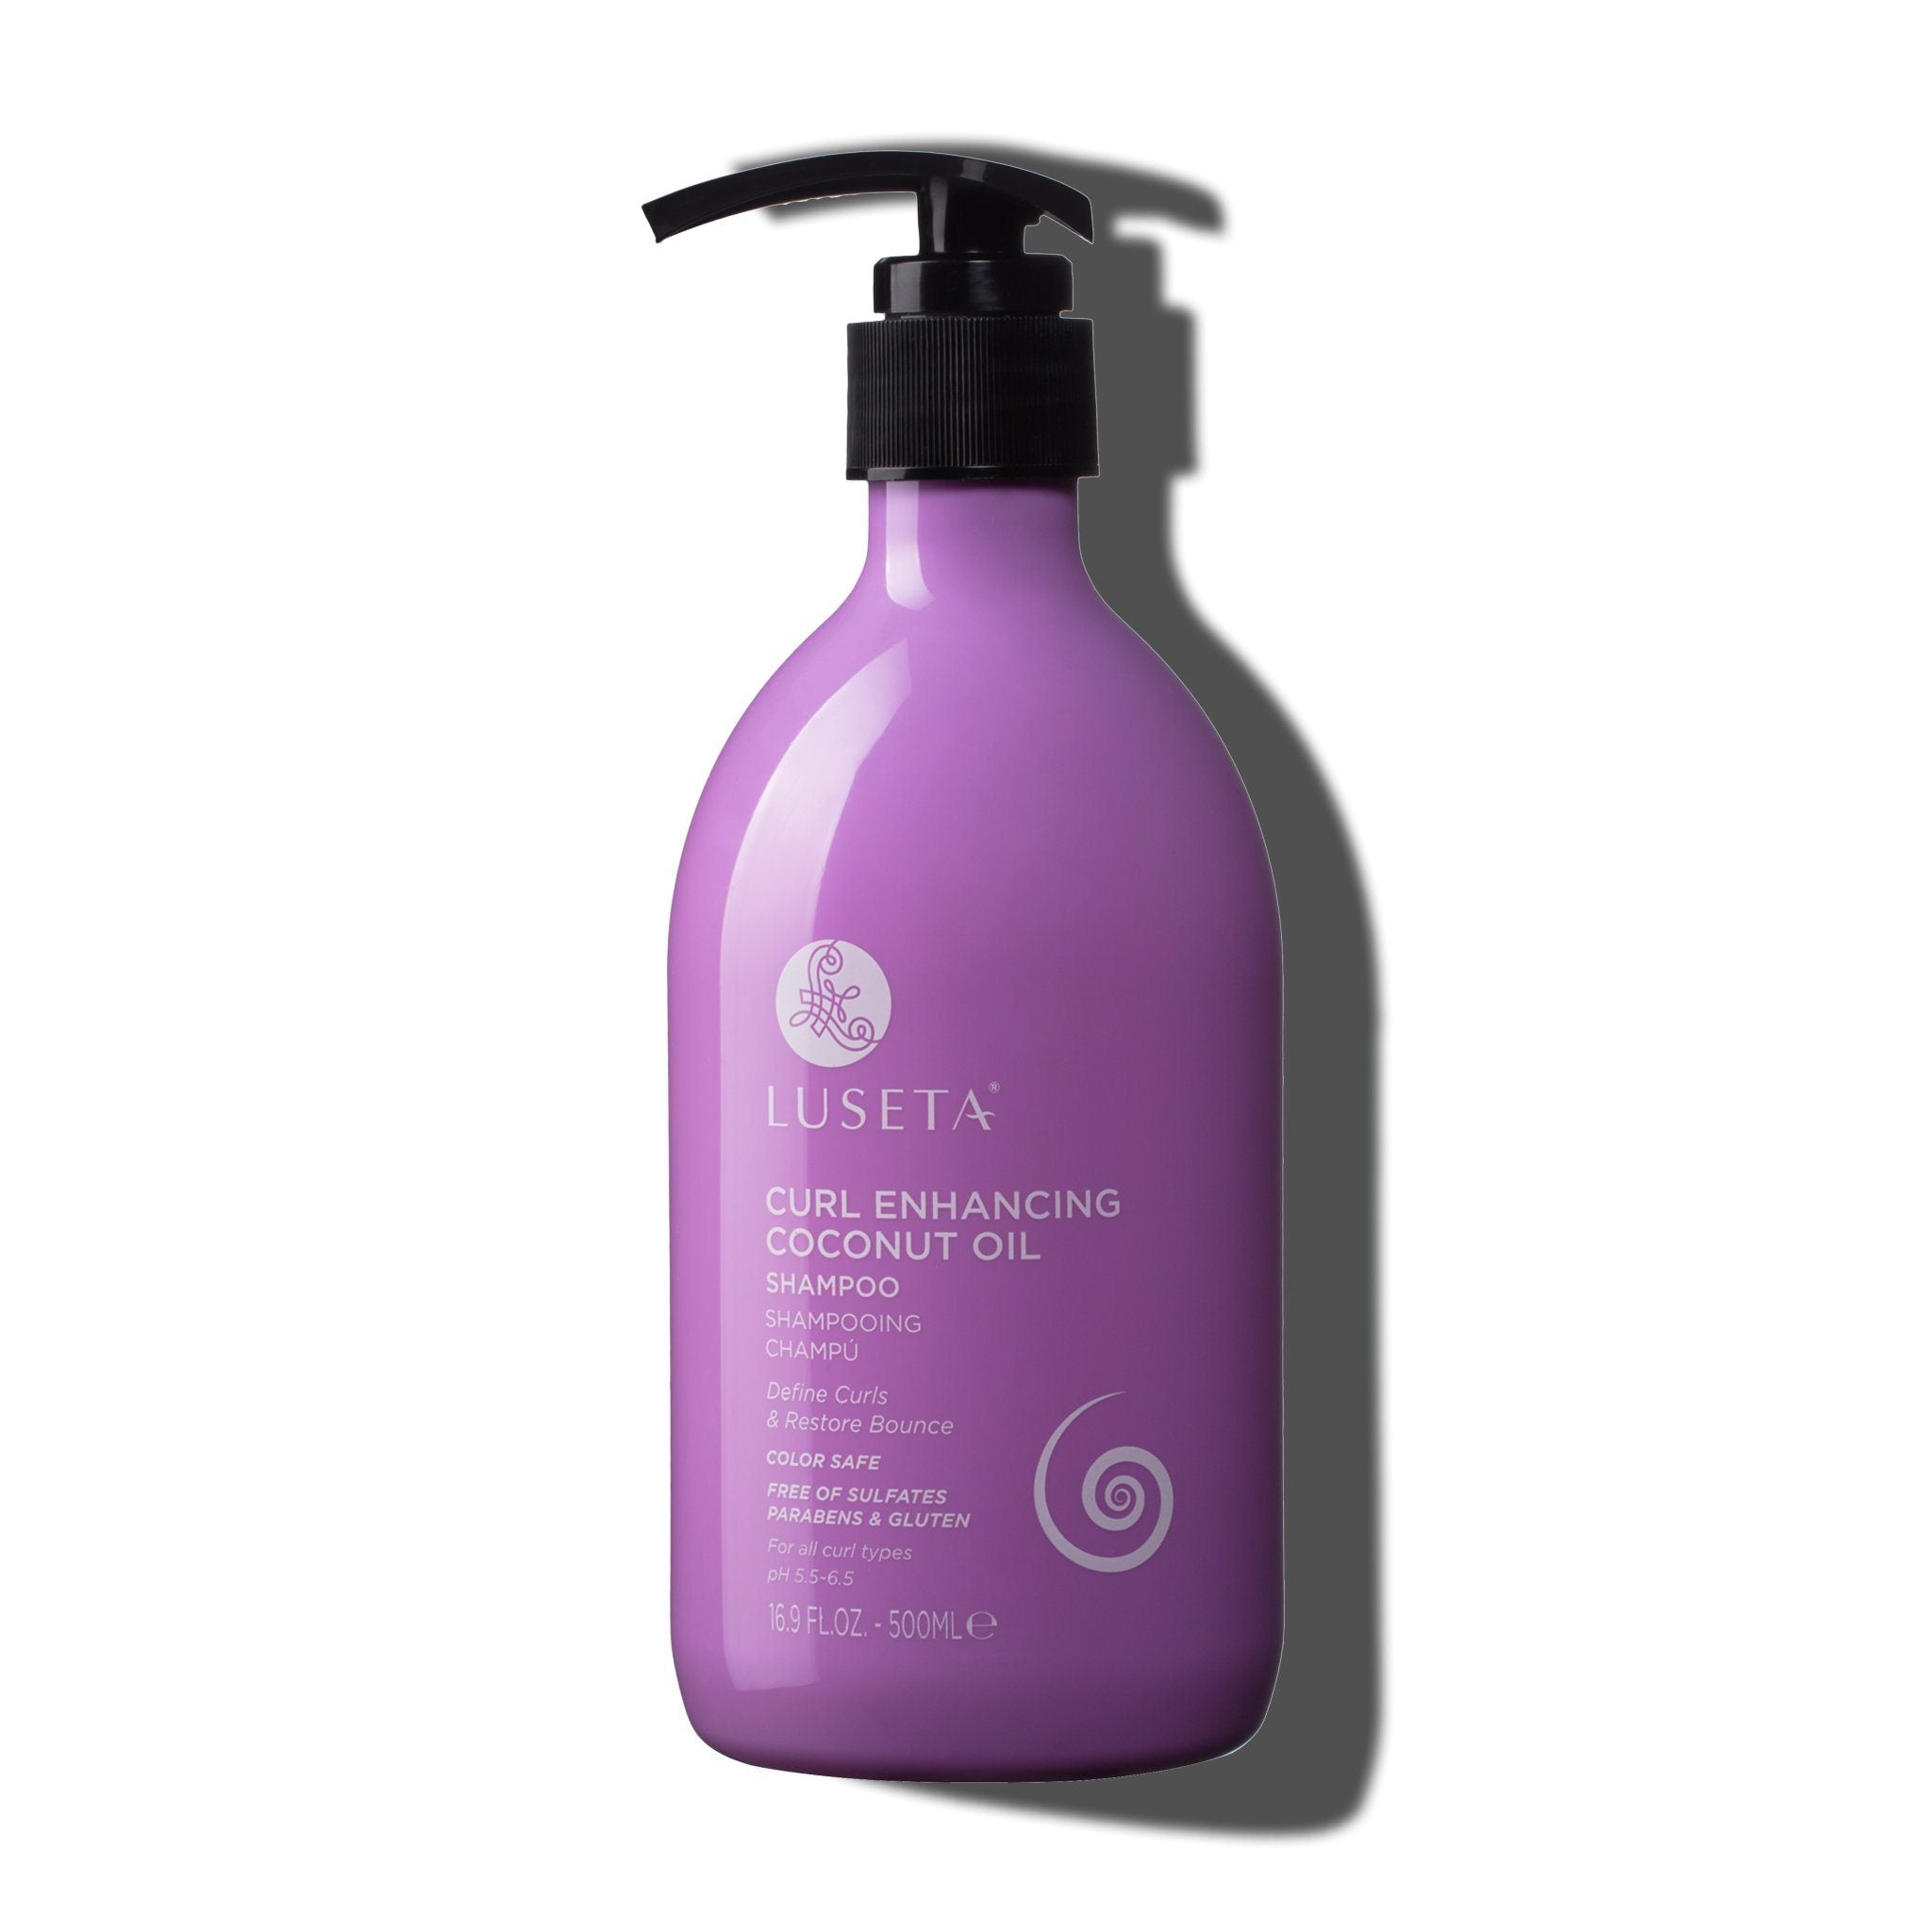 Curl Enhancing Coconut Oil Shampoo